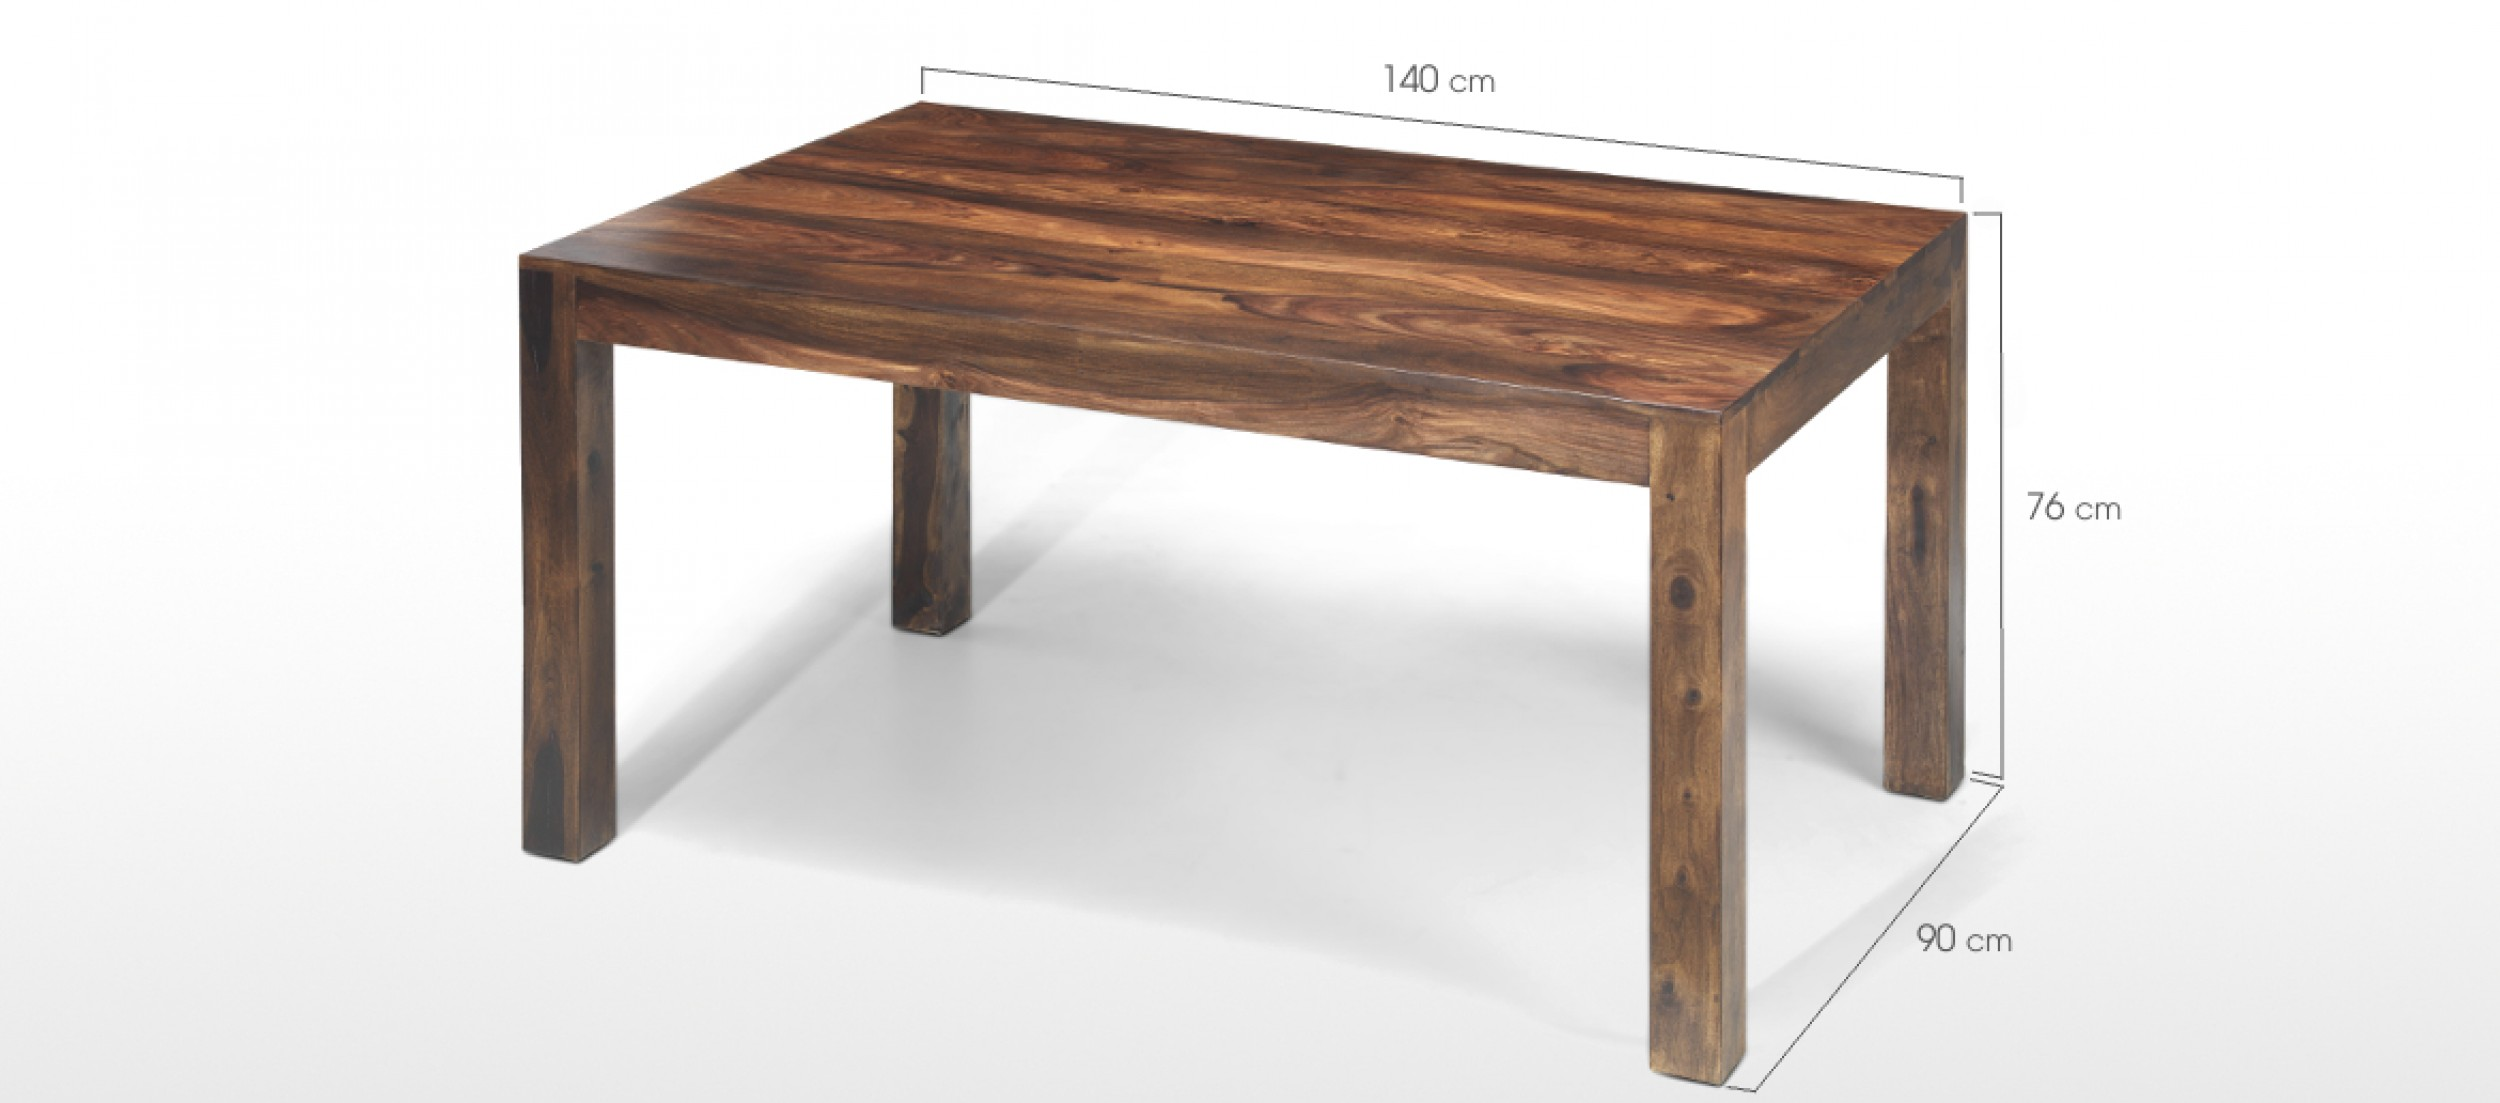 Cube sheesham 140 cm dining table quercus living for Dining table length